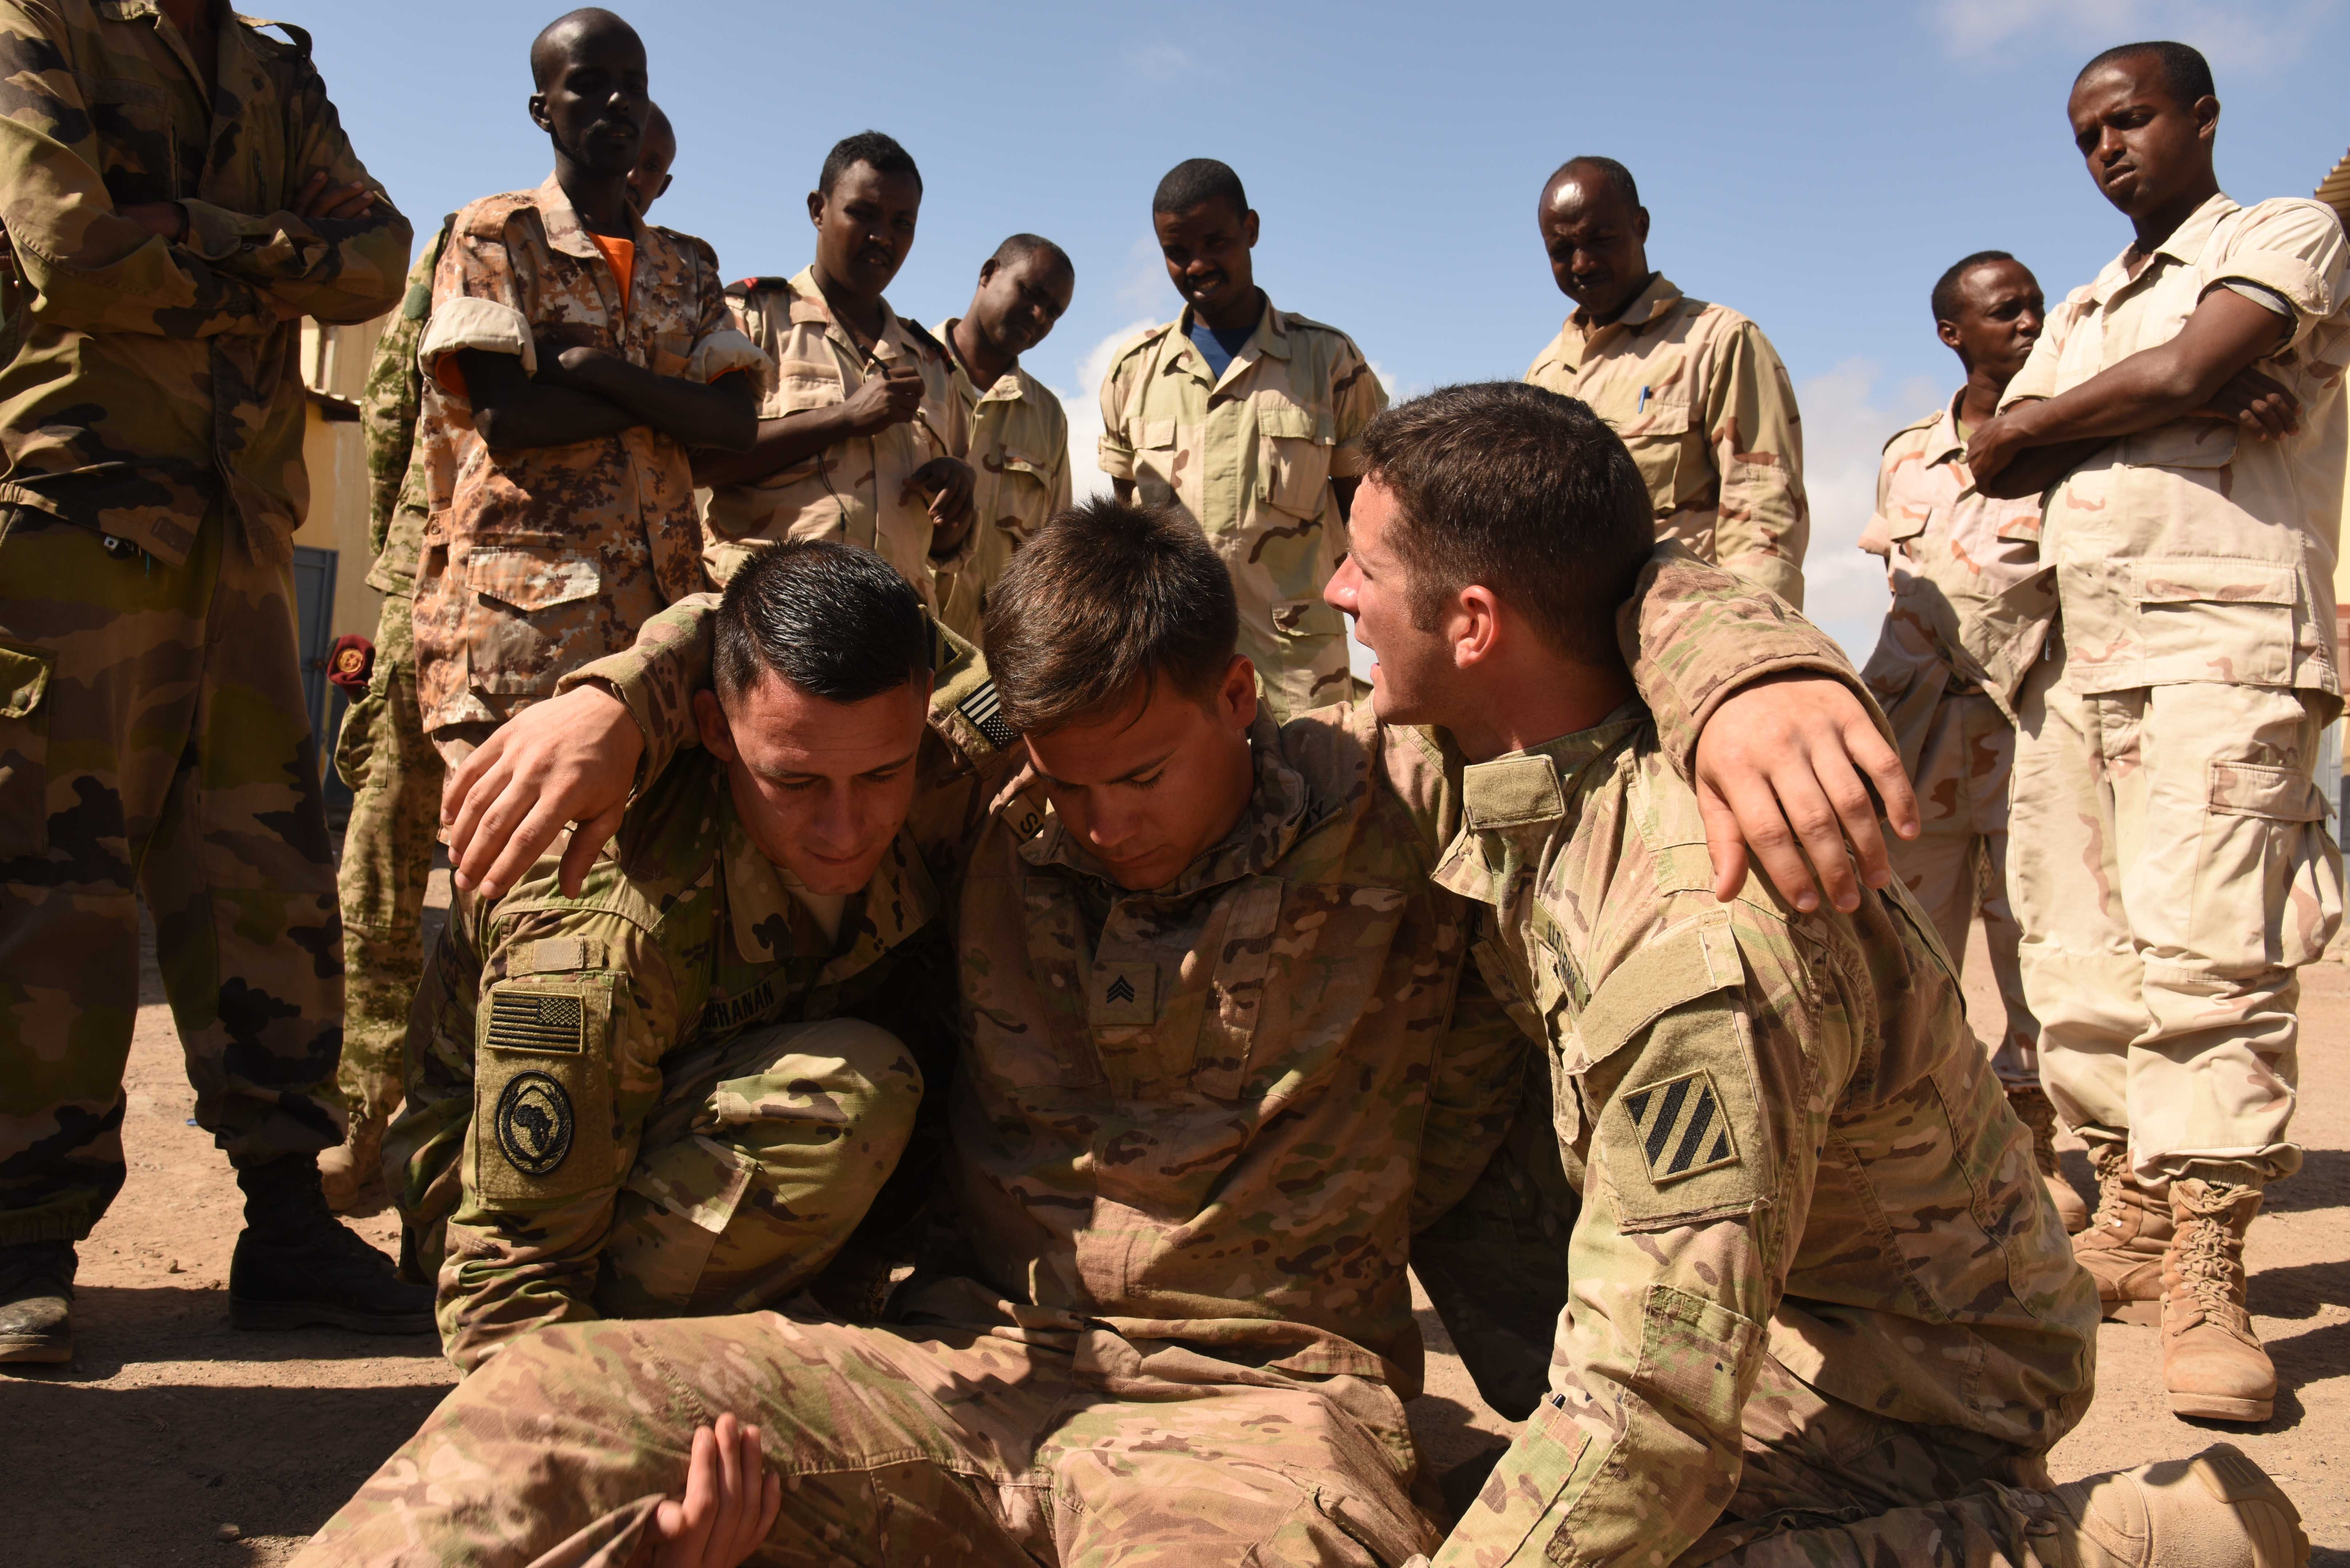 U.S. Army soldiers from 6th Squadron, 8th Cavalry Regiment demonstrate a two-man seated carry to Djiboutian Armed Forces (FAD) soldiers during a Combat Lifesaver Course at the Central Management of Materials and Engineering Services compound, Djibouti, Mar. 2, 2016. FAD soldiers learned different carries to transport wounded from combat situations. (U.S. Air Force photo by Staff Sgt. Victoria Sneed)